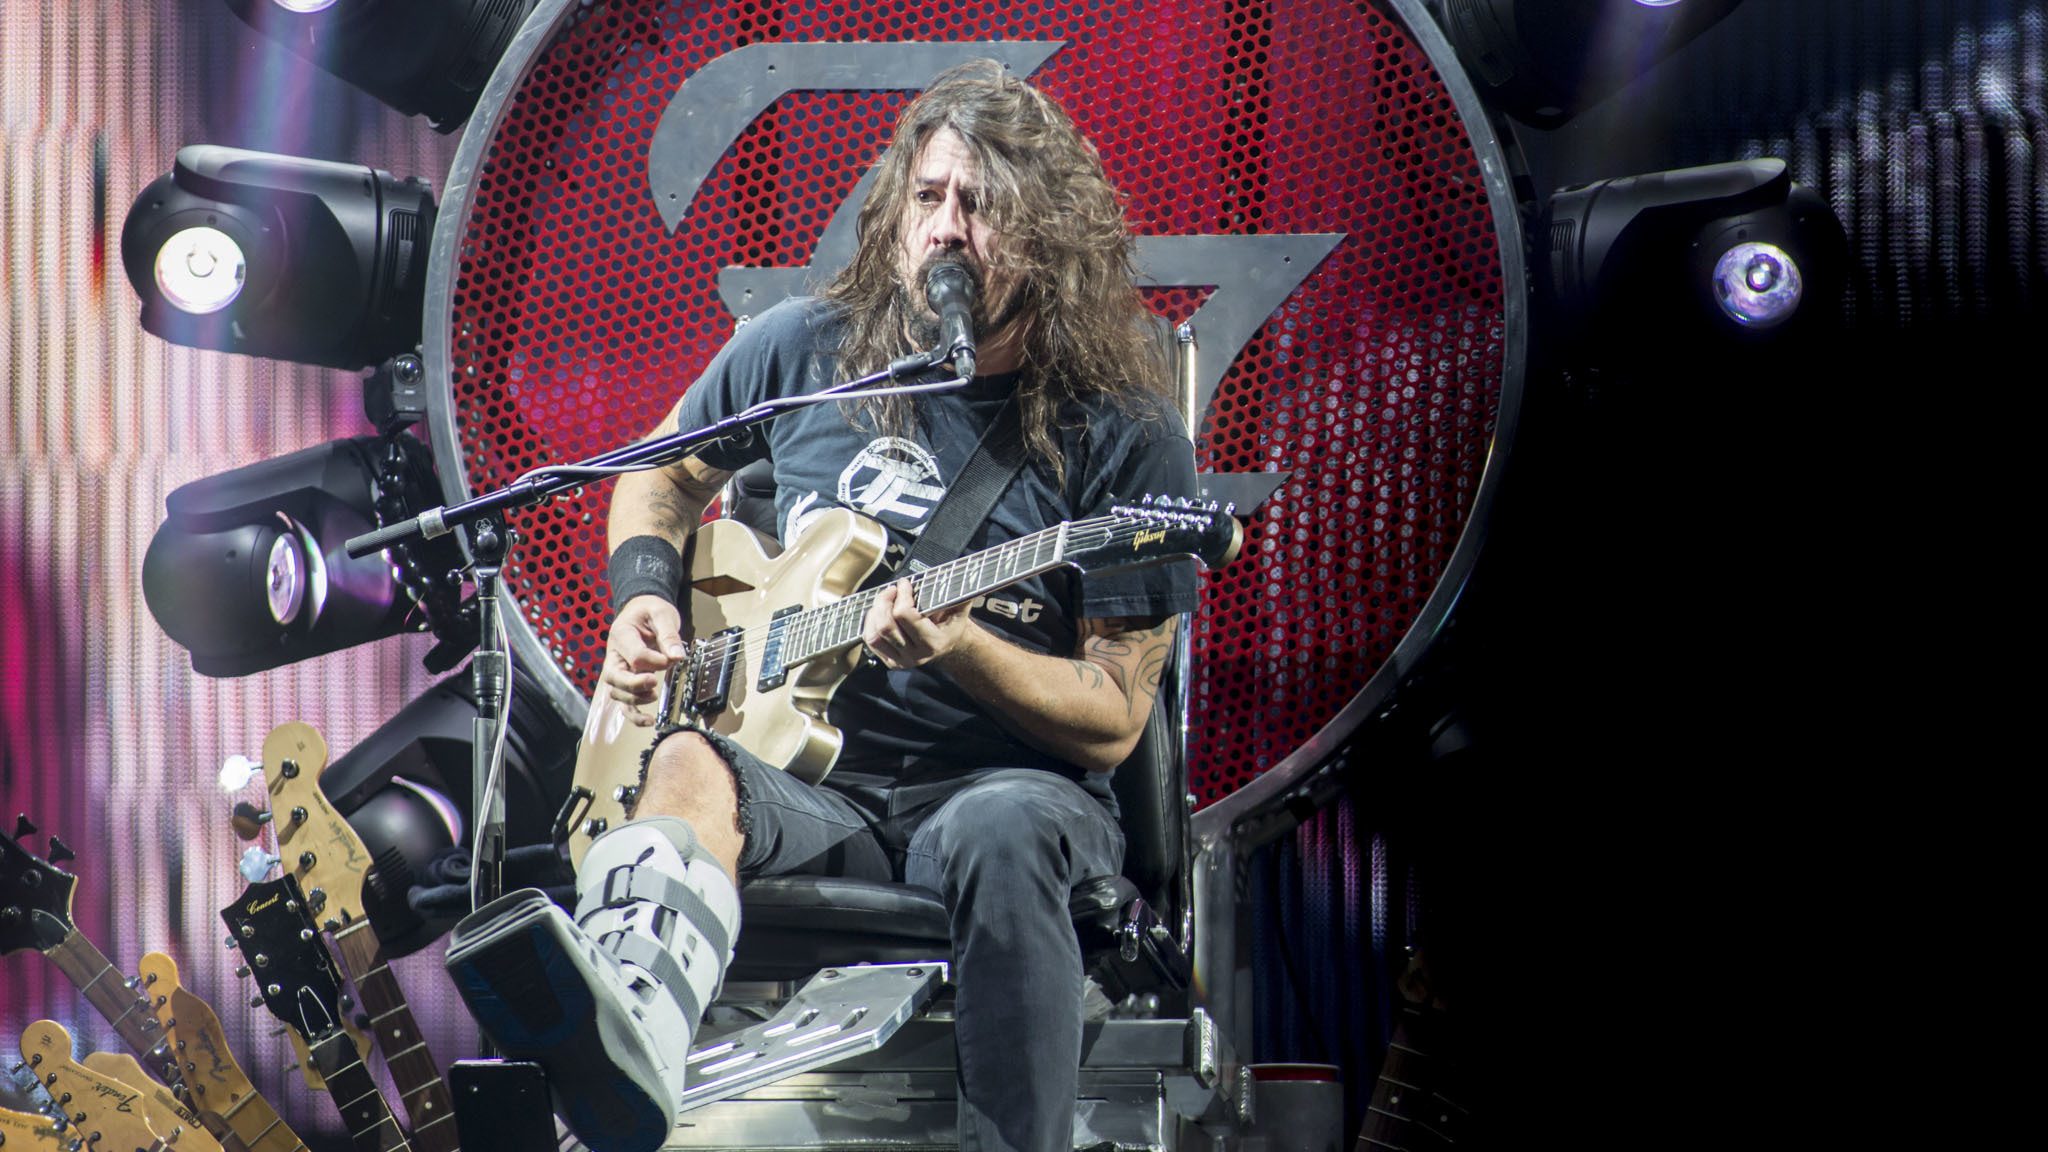 Foo Fighters played to a sold-out crowd at Wrigley Field on August 29, 2015.